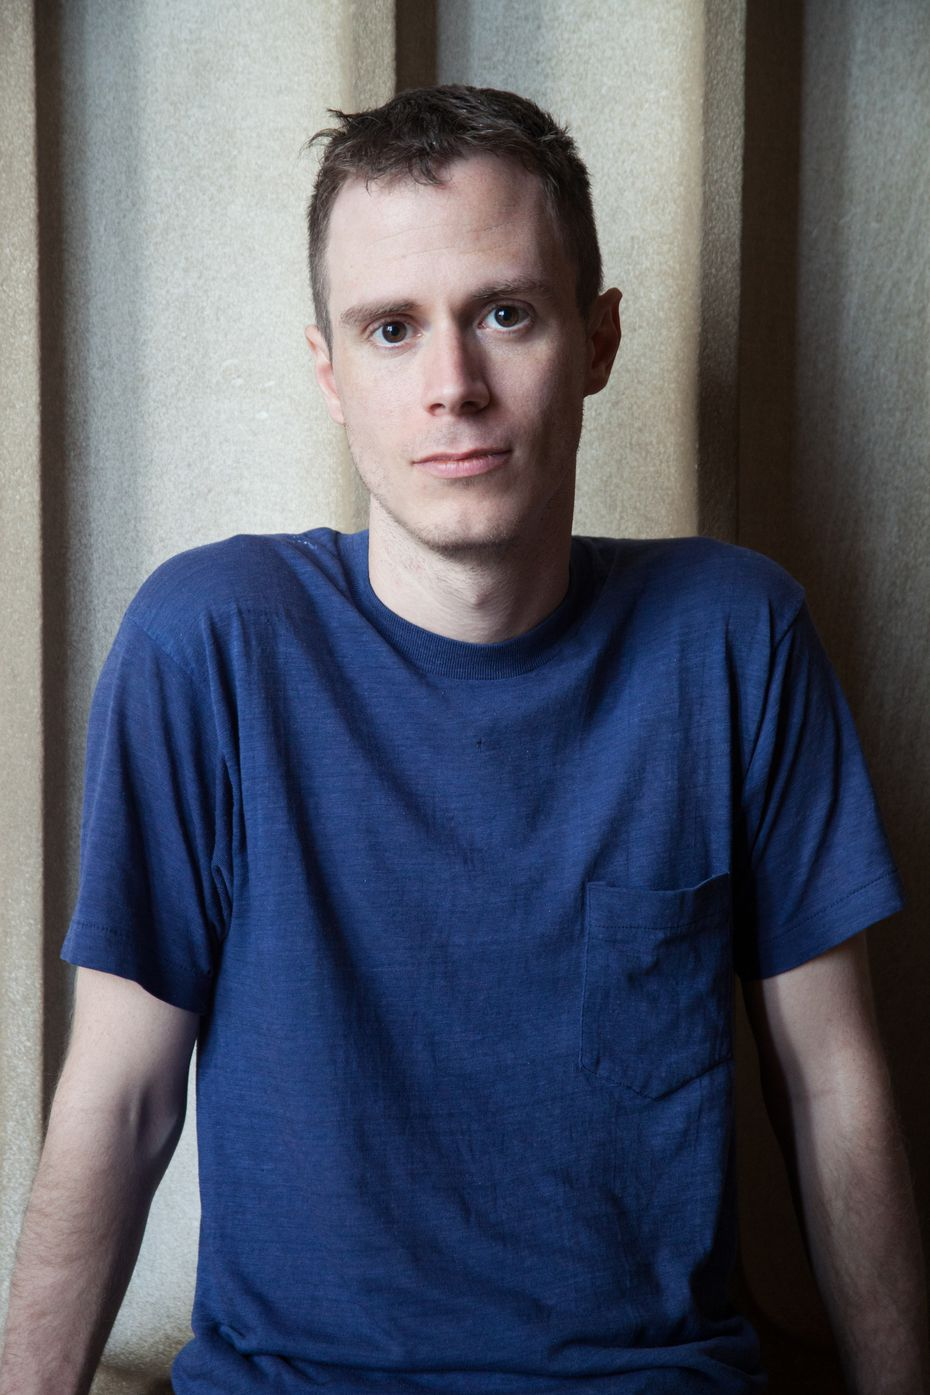 In addition to Angel Olsen, producer John Congleton has worked with St. Vincent, Sarah Jaffe and many others.